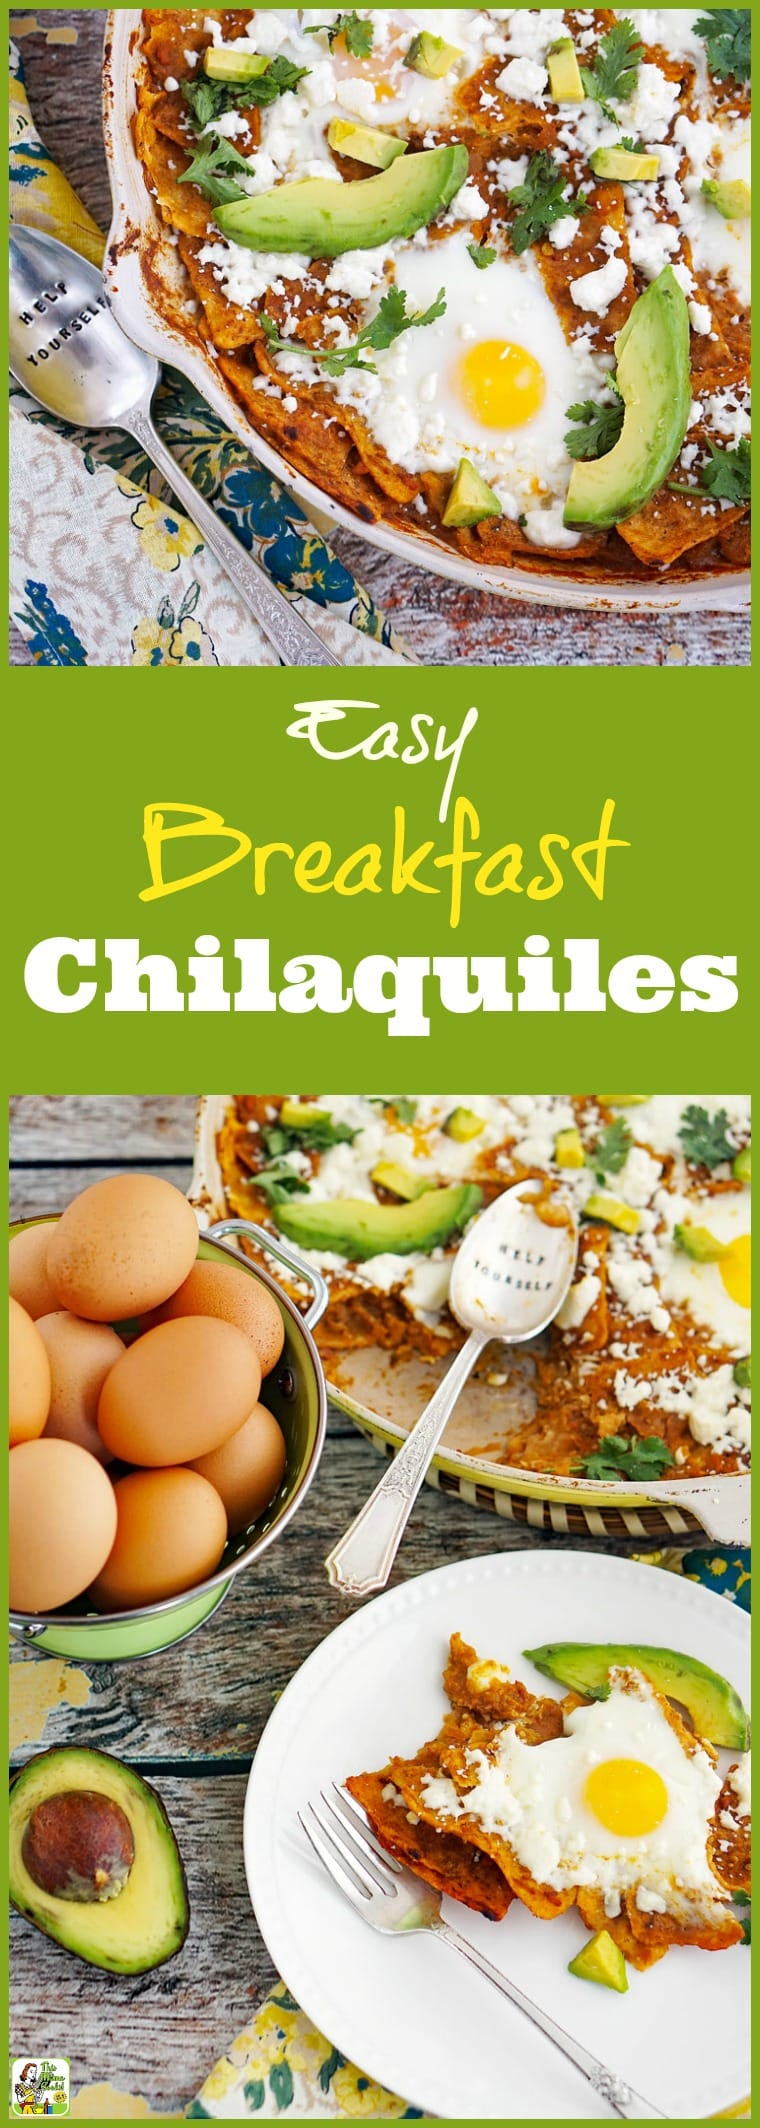 This easy breakfast chilaquiles recipe with eggs makes a terrific brinner recipe, too. Click to get this one-pot skillet breakfast recipe that\'s naturally gluten-free. #breakfast #eggs #chilaquiles #mexicanfood #glutenfree #skilletcooking #onepot #avocados #brinner #chorizo #recipe #easy #recipeoftheday #healthyrecipes #easyrecipes